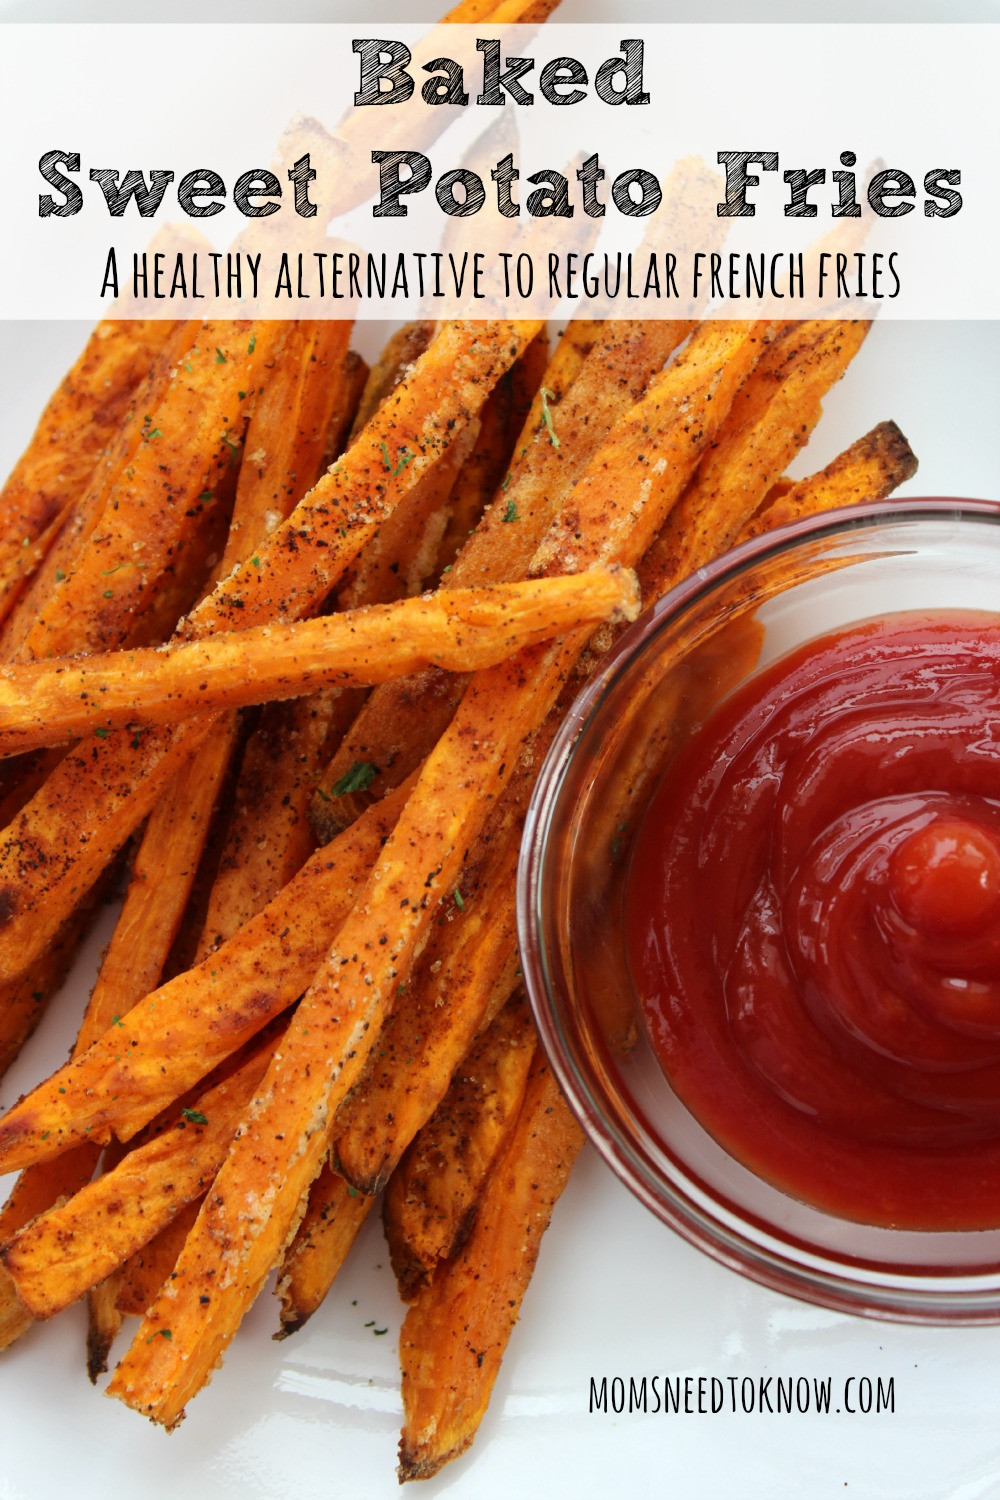 How To Make A Sweet Potato  Baked Sweet Potato Fries